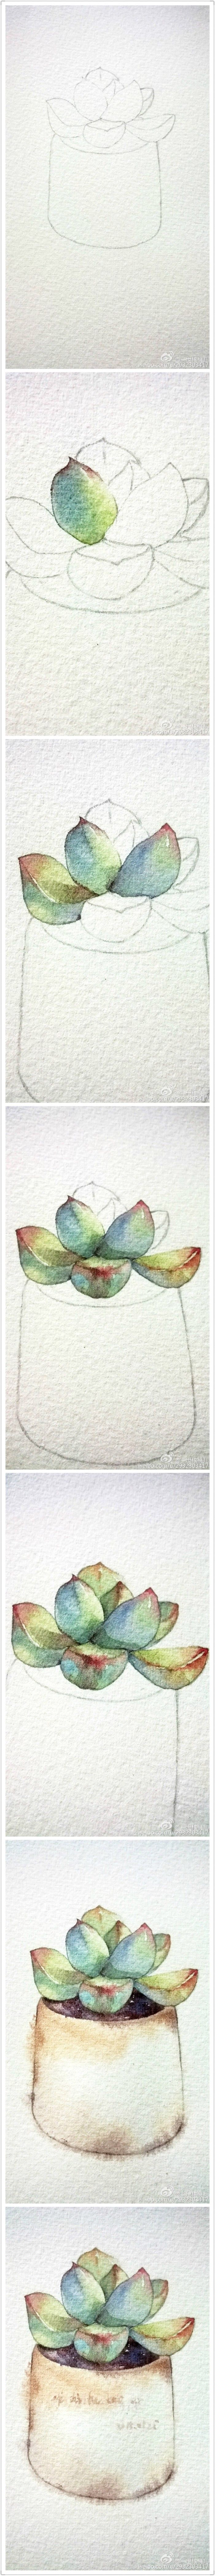 Etudes in Watercolor: how to develop creative abilities